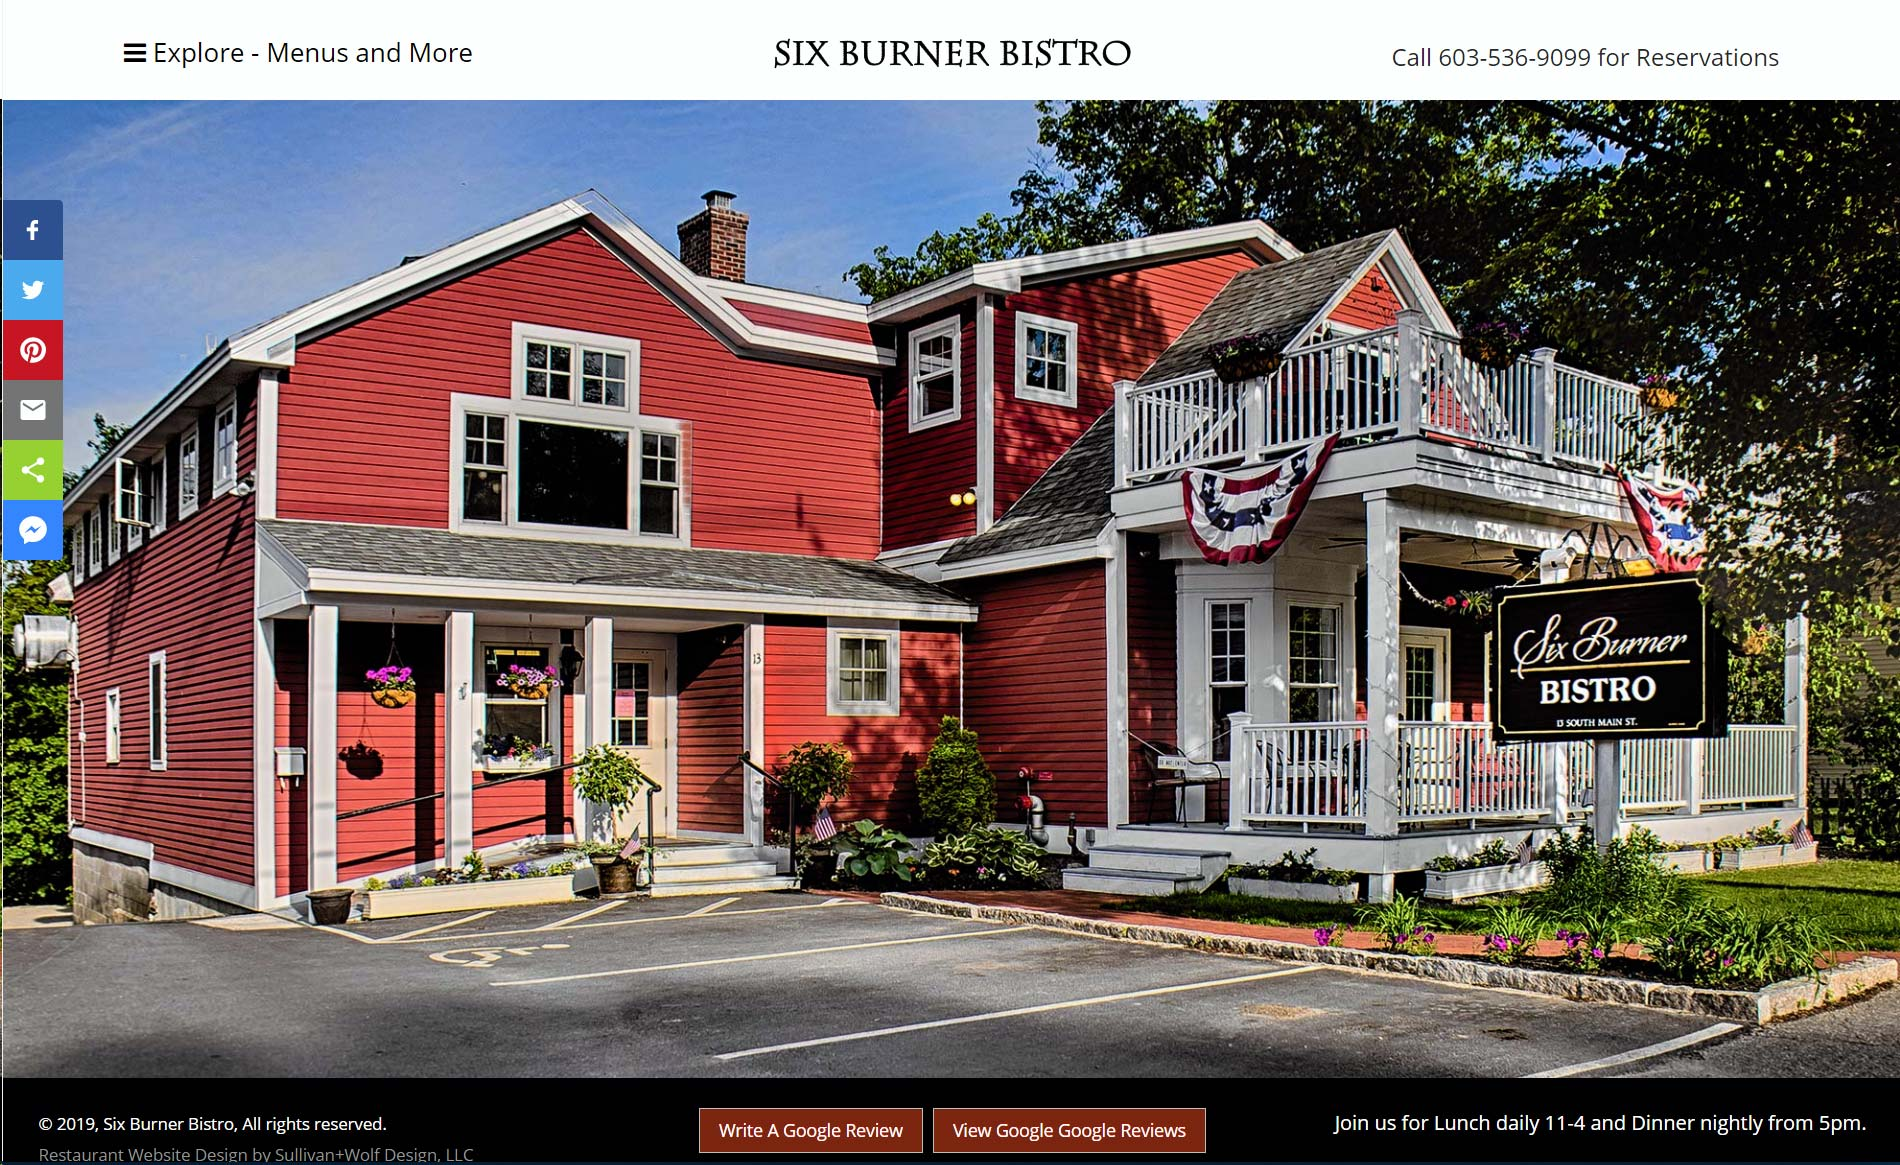 Elegant Dining, Delicious Lunches | Six Burner Bistro, a great